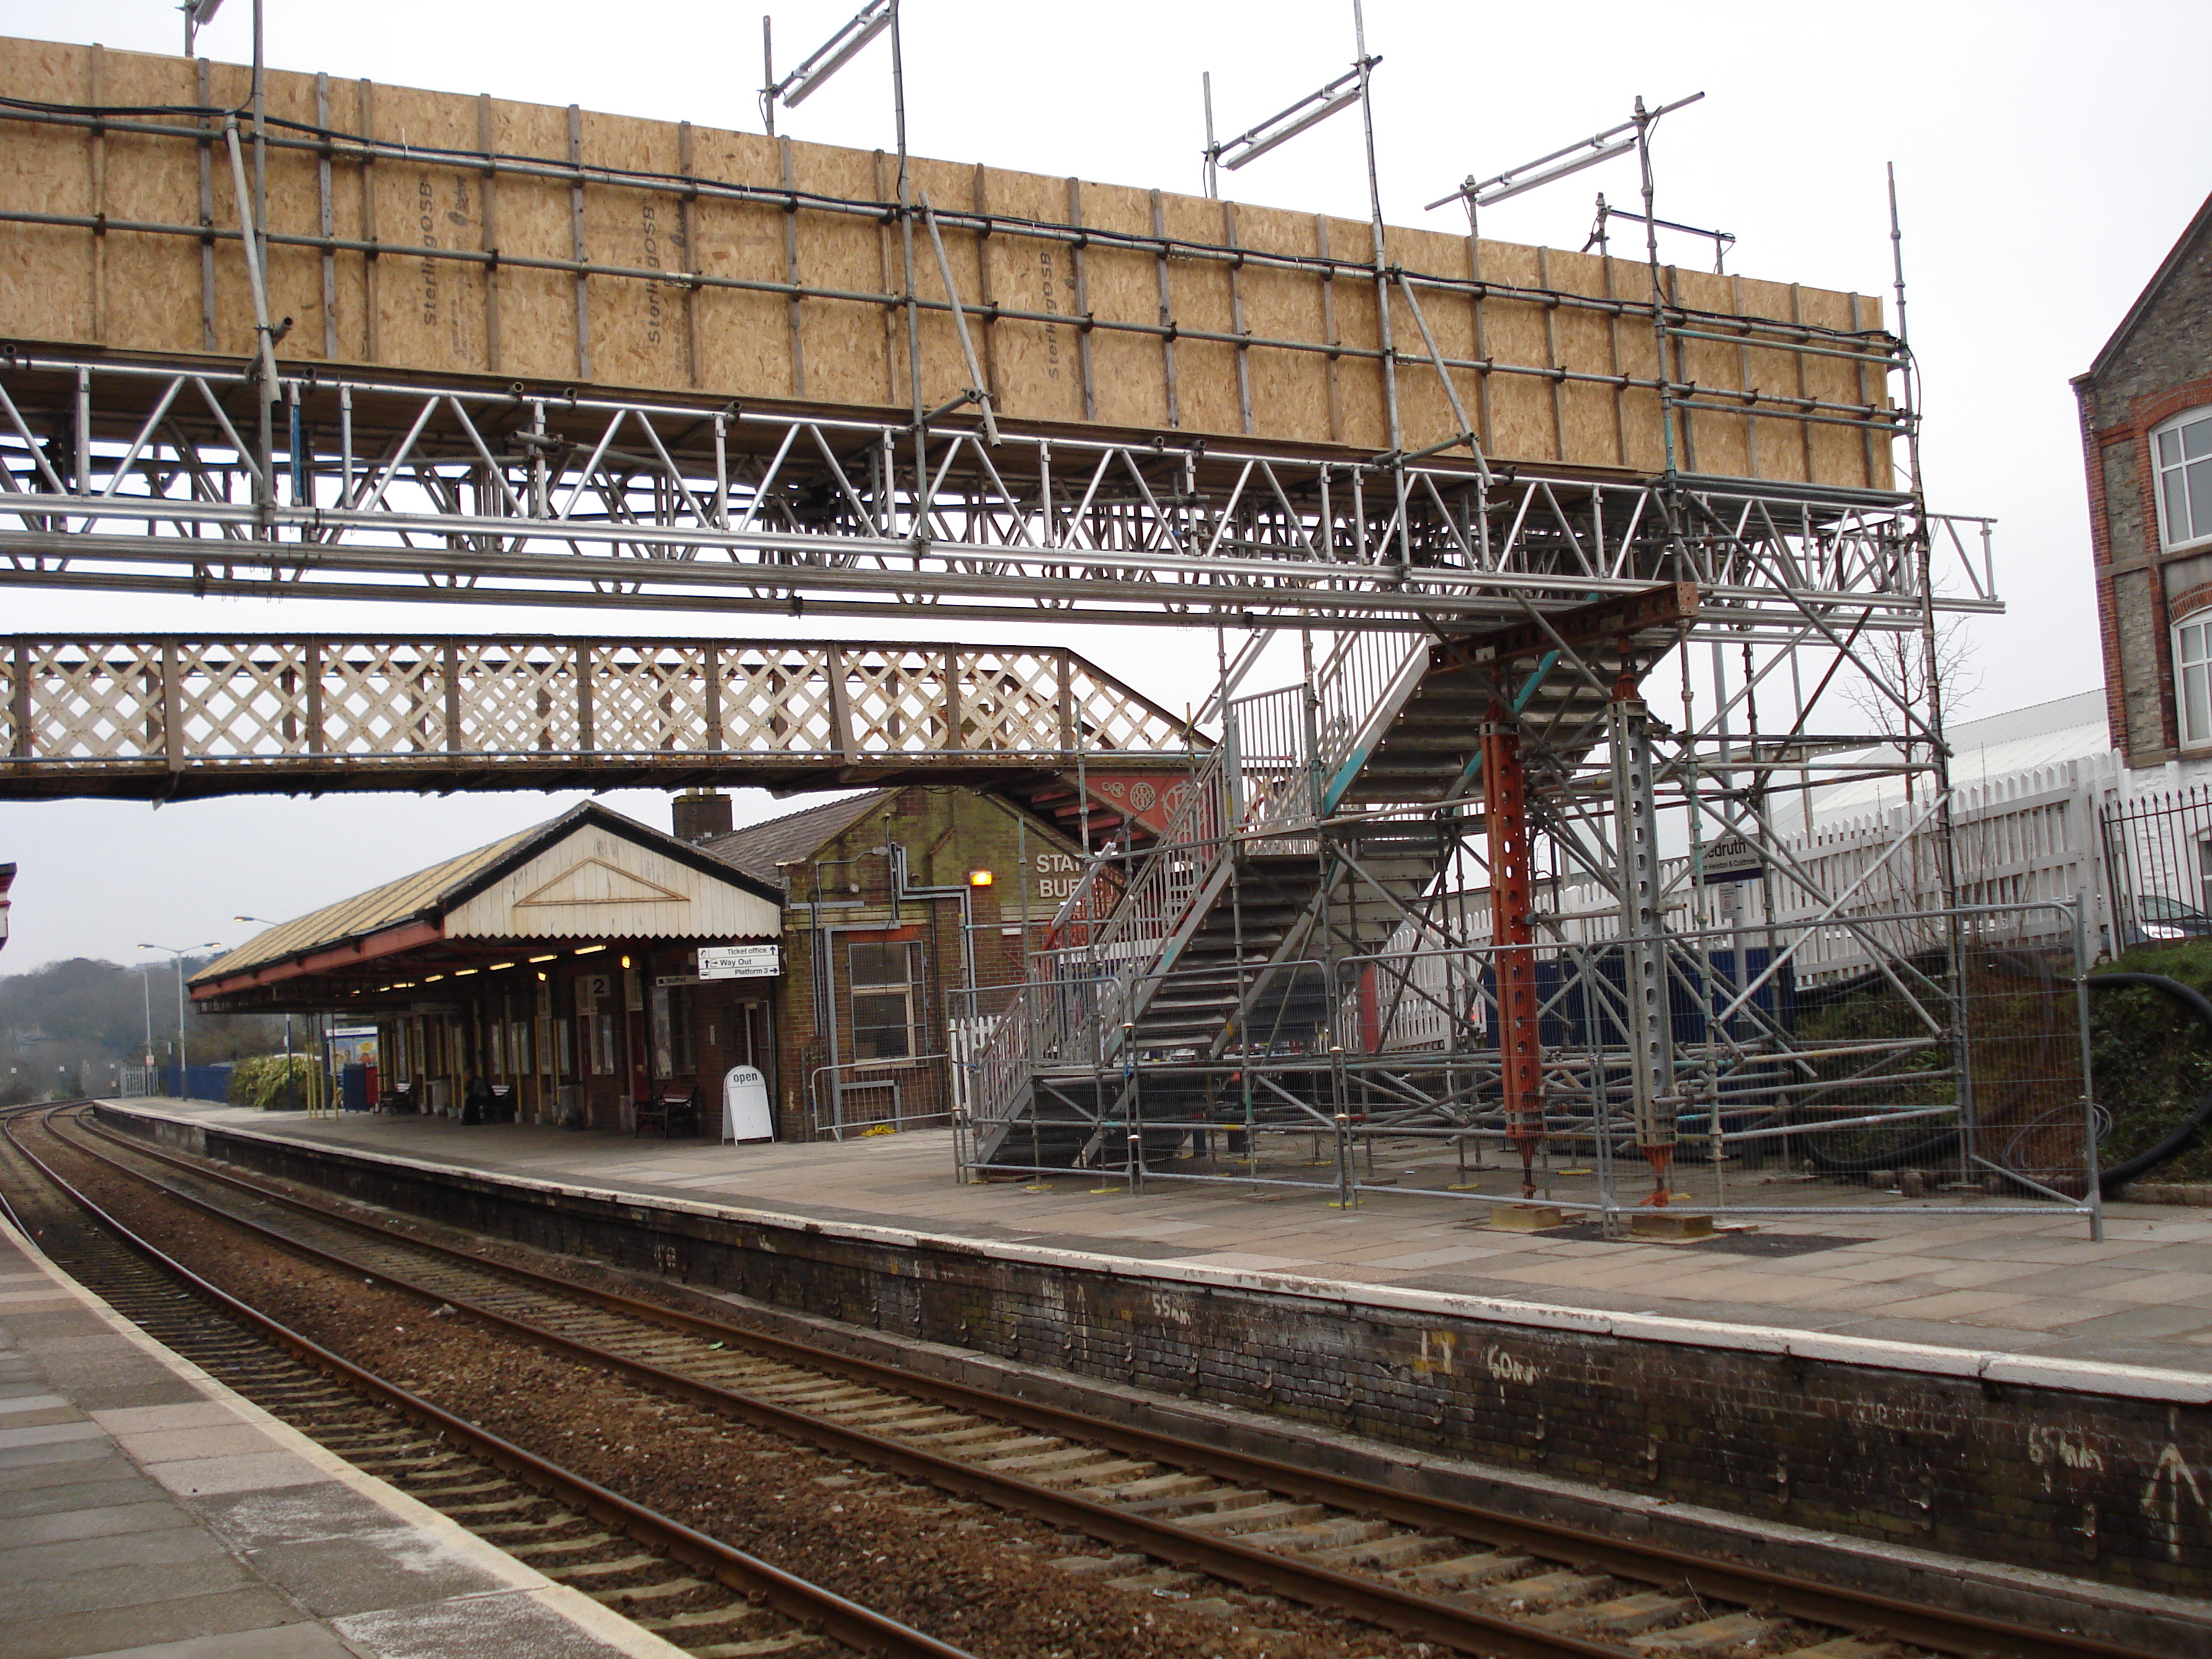 redruth-train-station-image-4